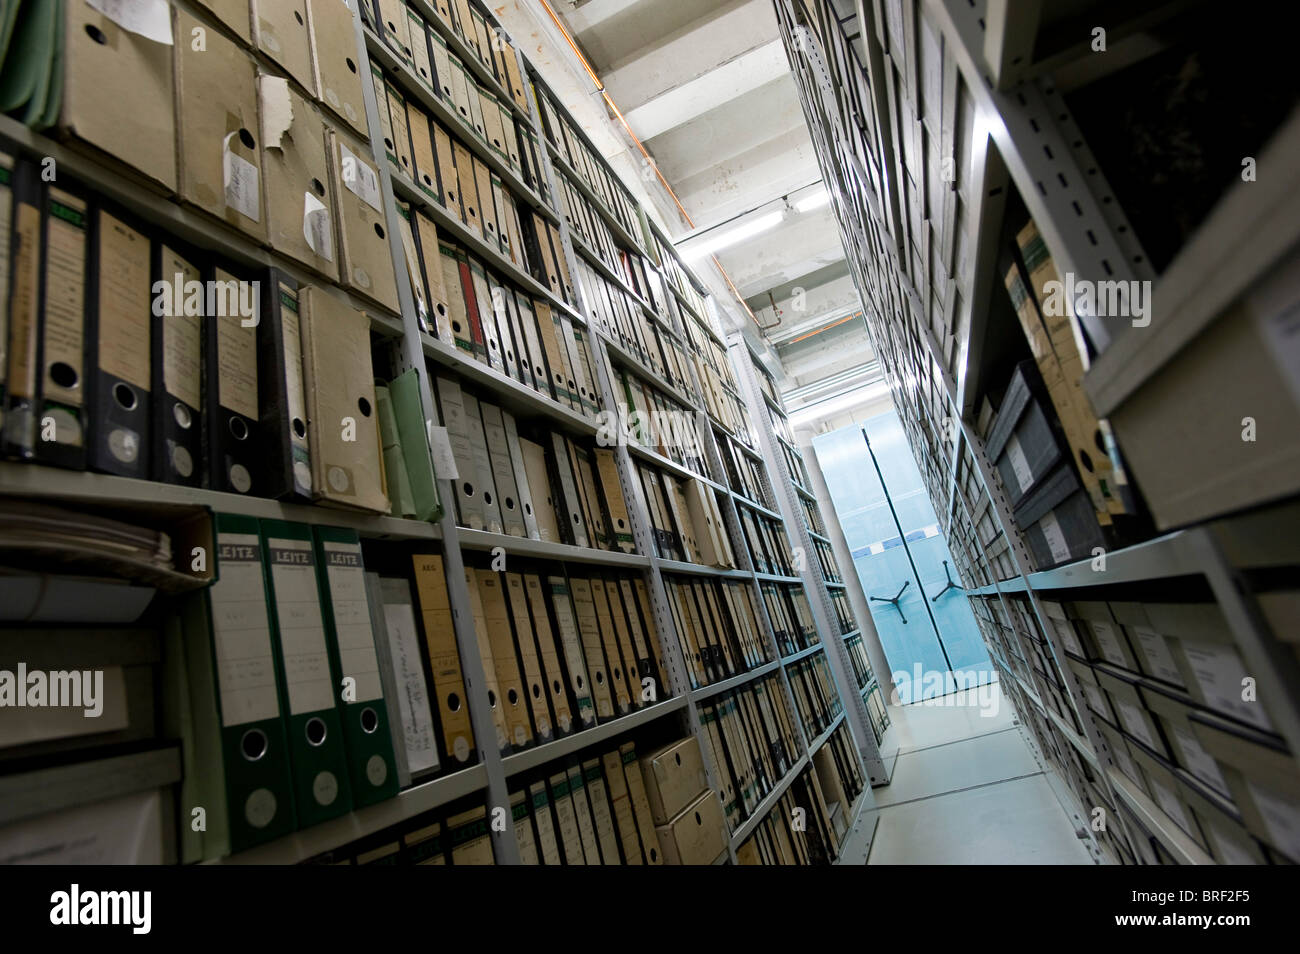 Archive of the Deutsches Technikmuseum, German museum of Technology, Berlin, Germany, Europe - Stock Image